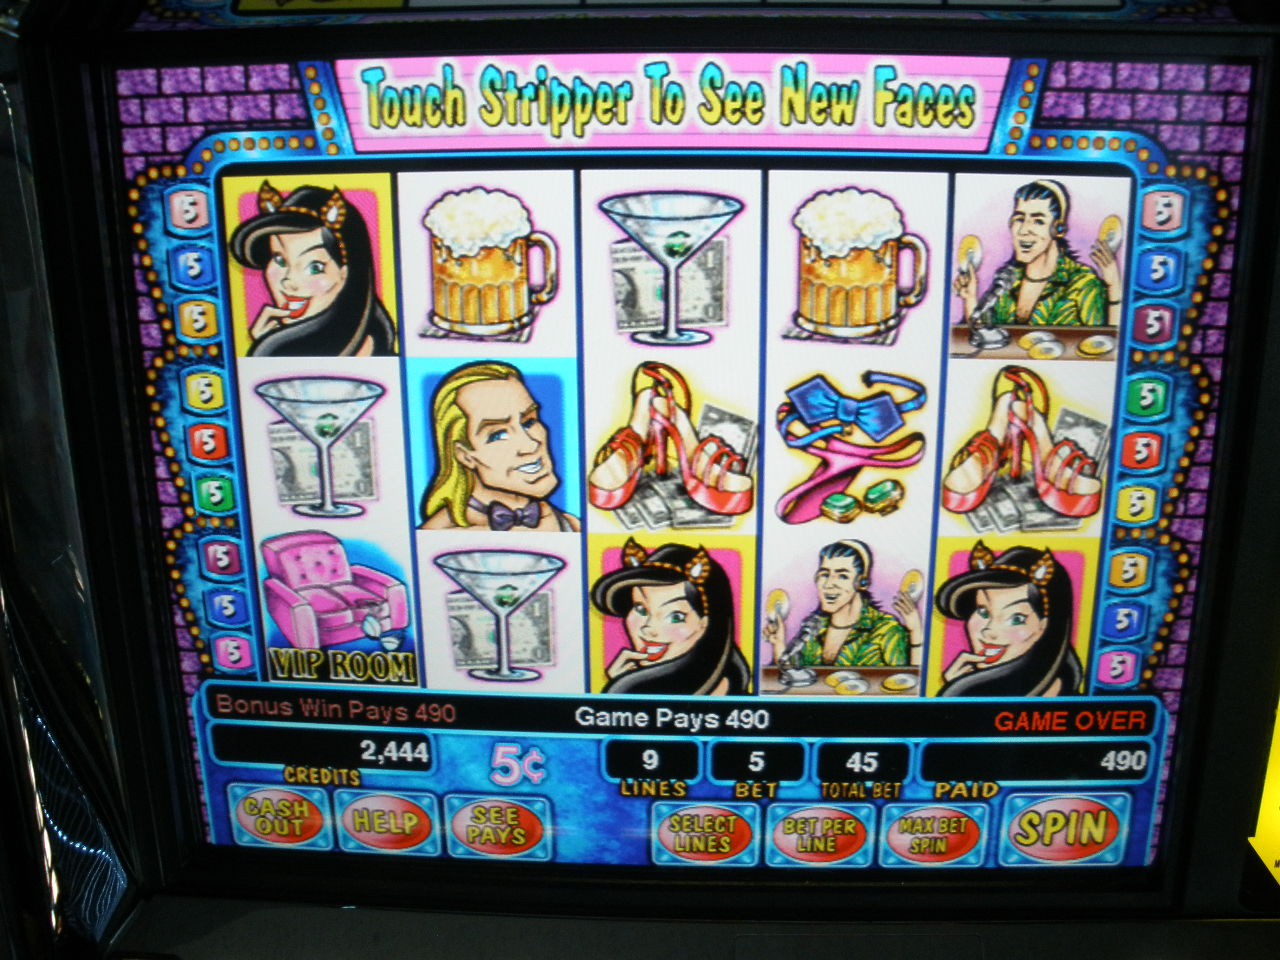 Igt risque business video slot machine with lcd touchscreen monitor igt risque business video slot machine with lcd touchscreen monitor publicscrutiny Images